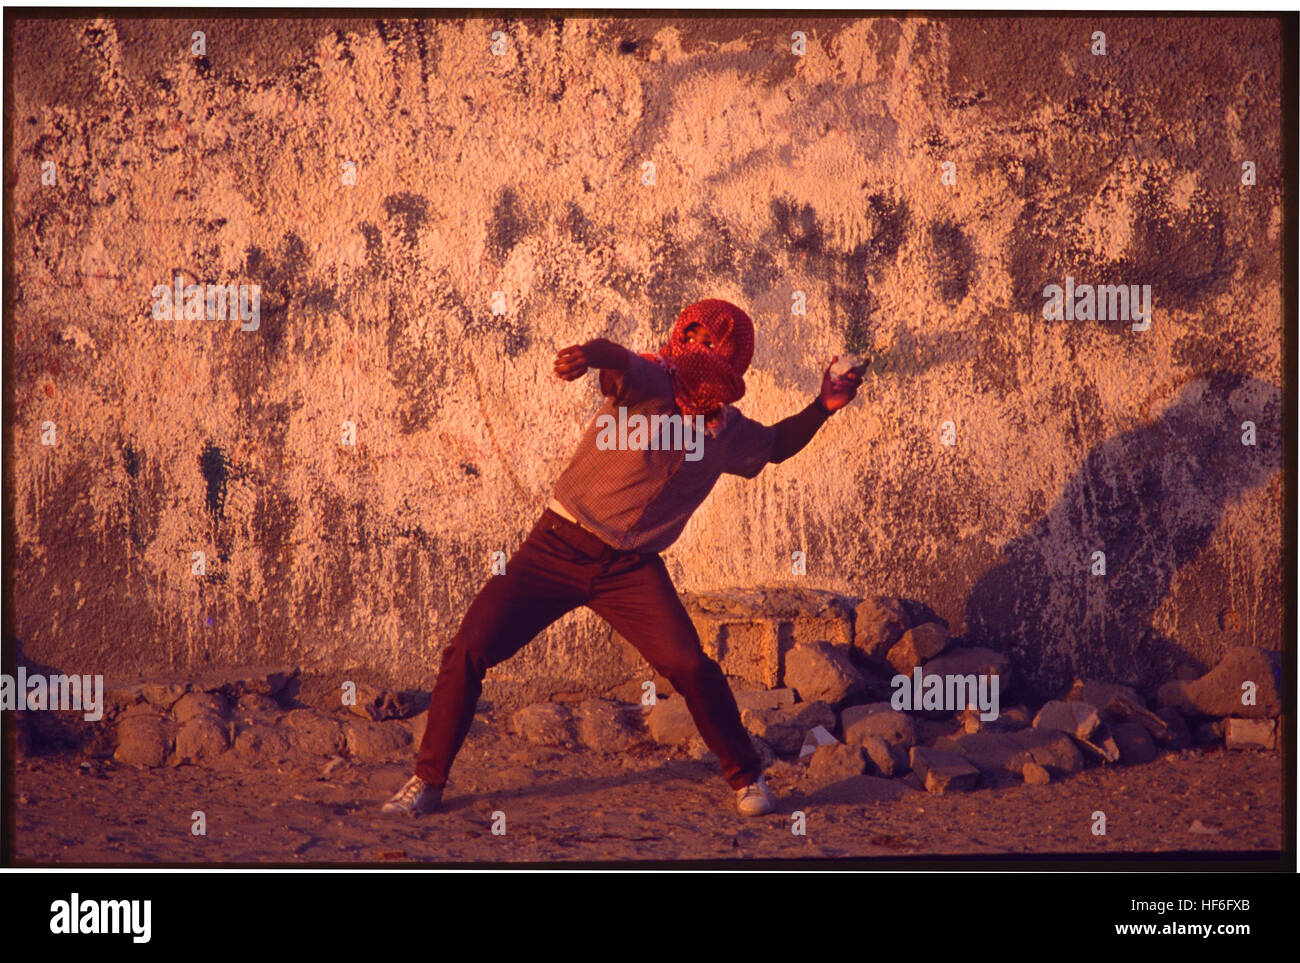 A PLO fighter throws rocks at Israeli Army soldiers during the first Intifada. - Stock Image